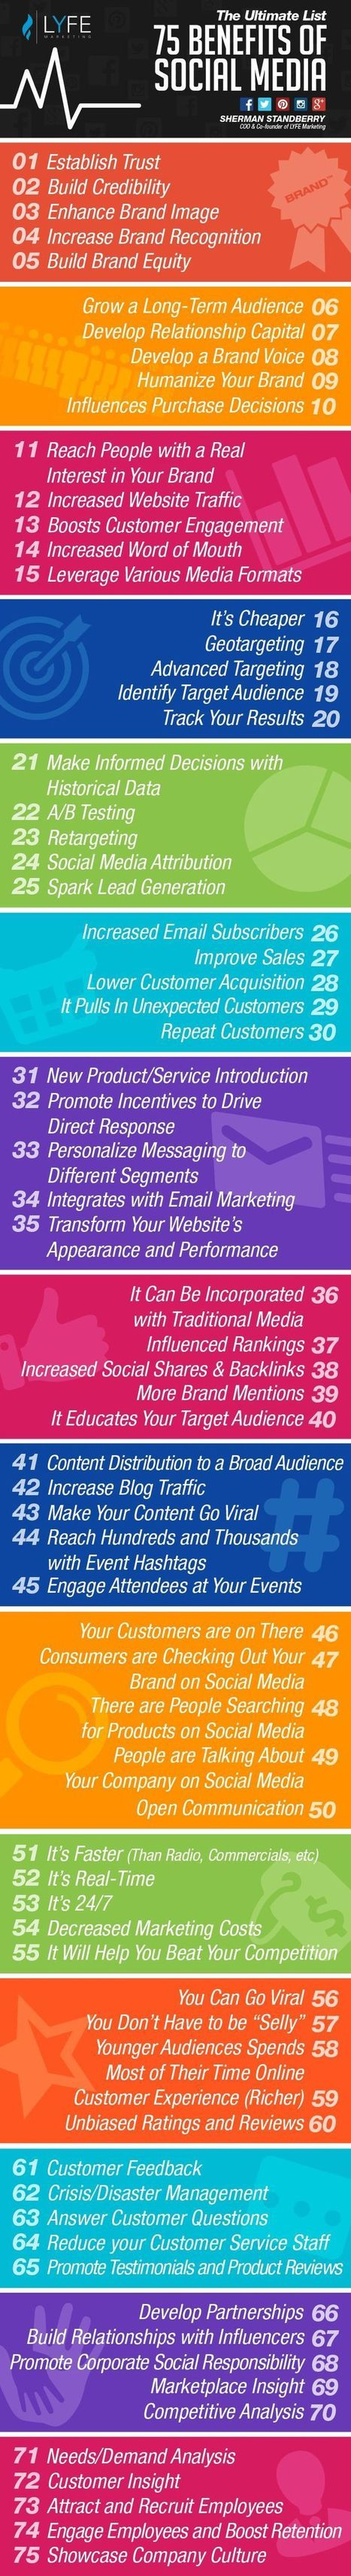 75 Benefits of Social Marketing | Public Relations & Social Media Insight | Scoop.it